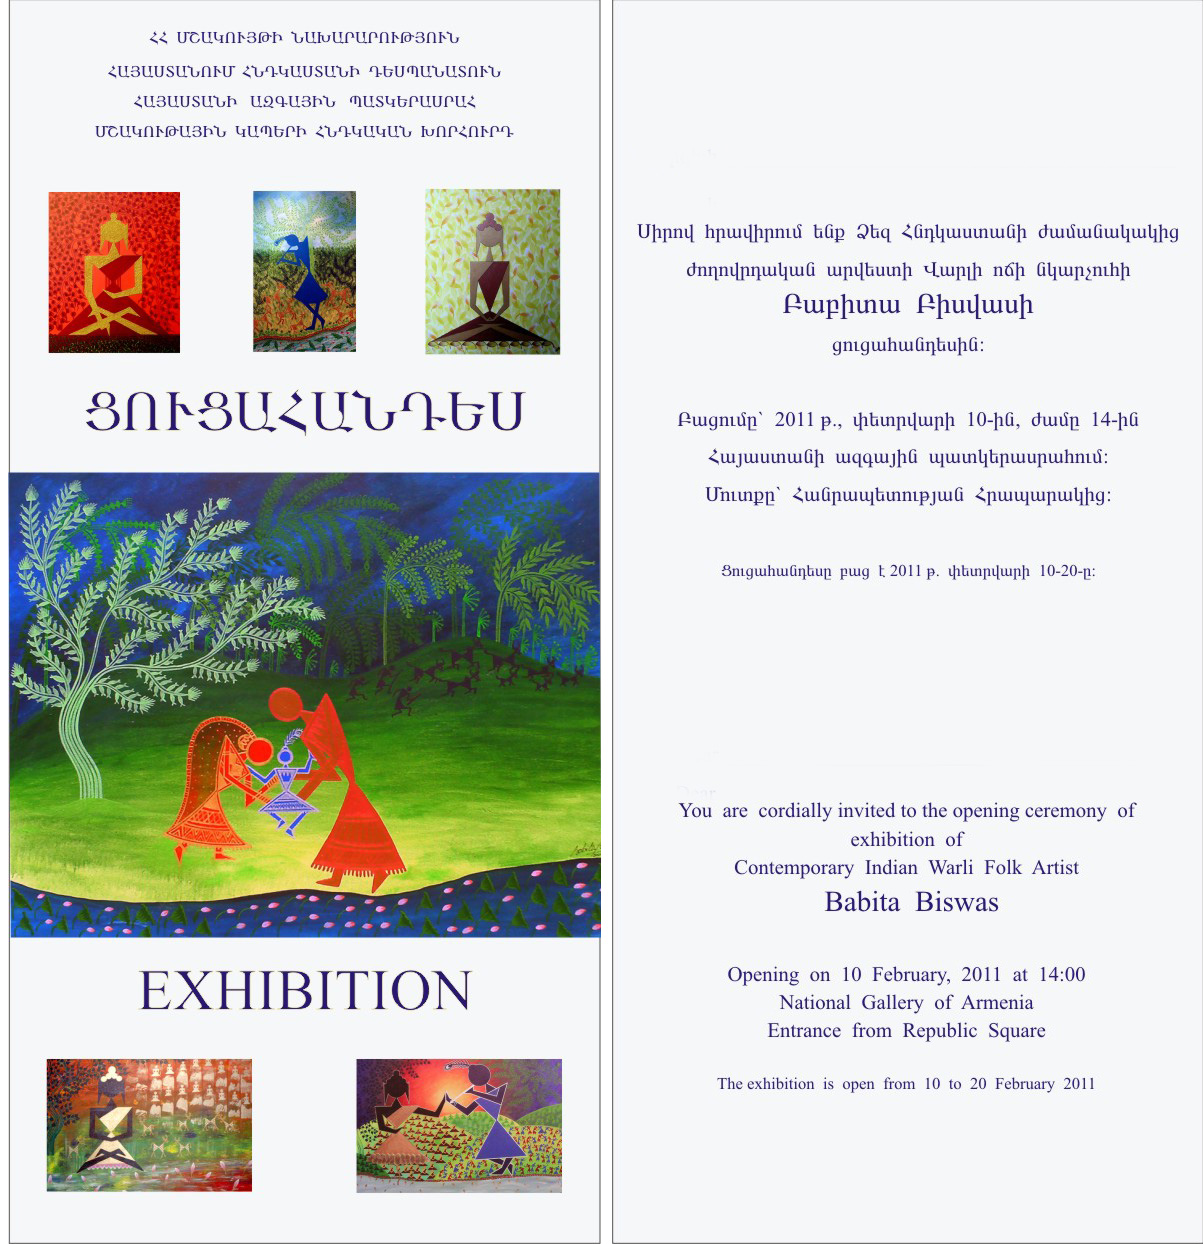 Indo armenian friendship announcements its our great pleasure to share the invitation with you all for a painting exhibition extended by embassy of india in yerevan stopboris Images